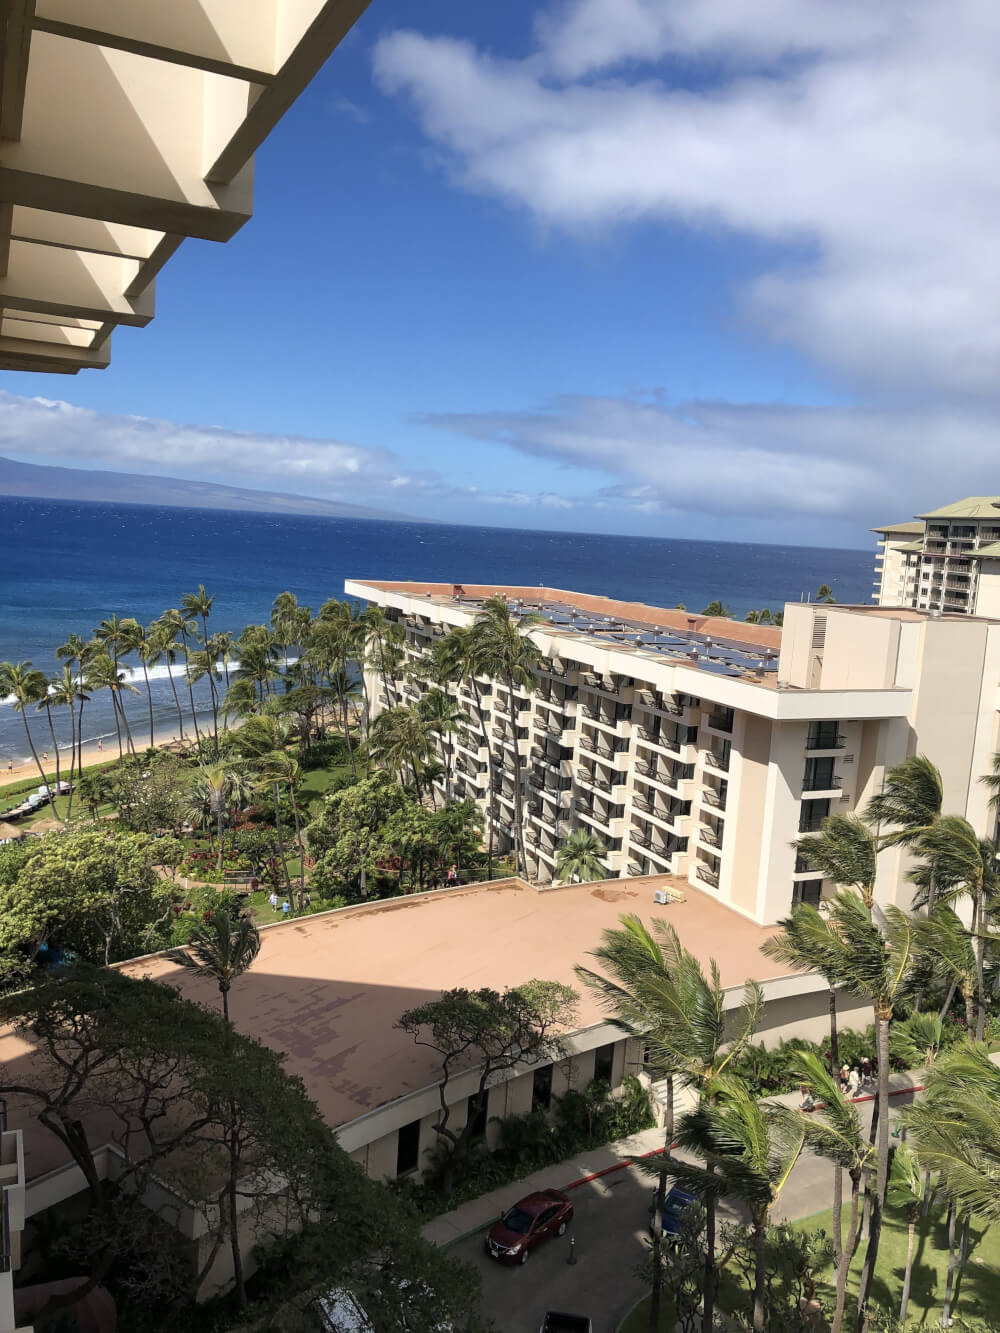 3 Day Maui Itinerary with Kids featured by top Hawaii travel blog, Hawaii Travel with Kids: Staying on Maui with kids? The Hyatt Regency Maui in Kaanapali is a great place to stay for families with kids